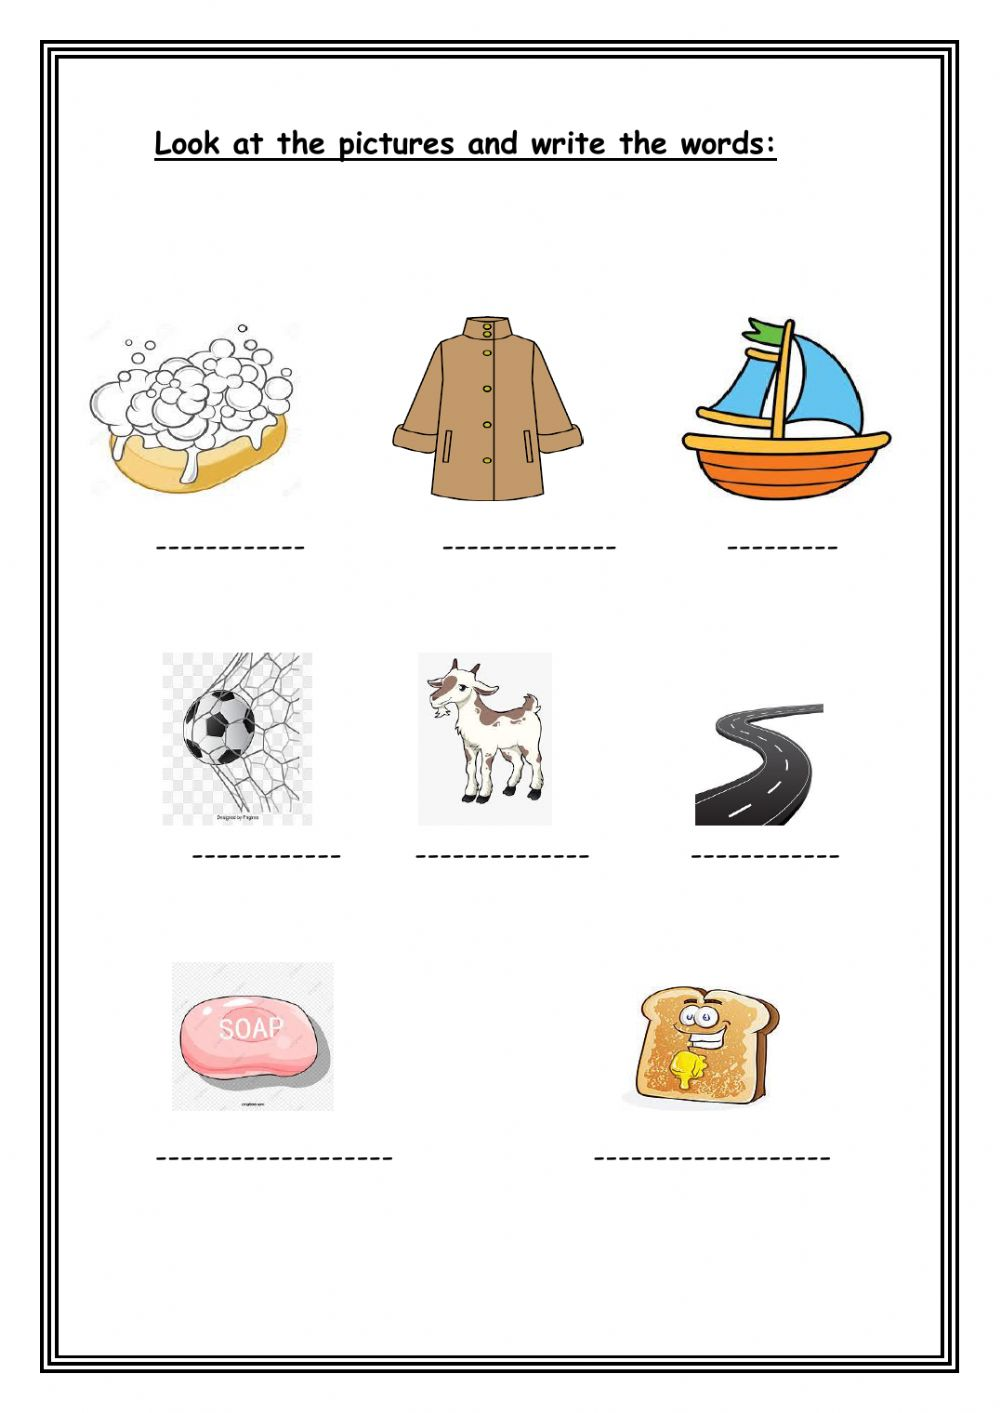 Look At The Pictures And Write The Words Worksheet